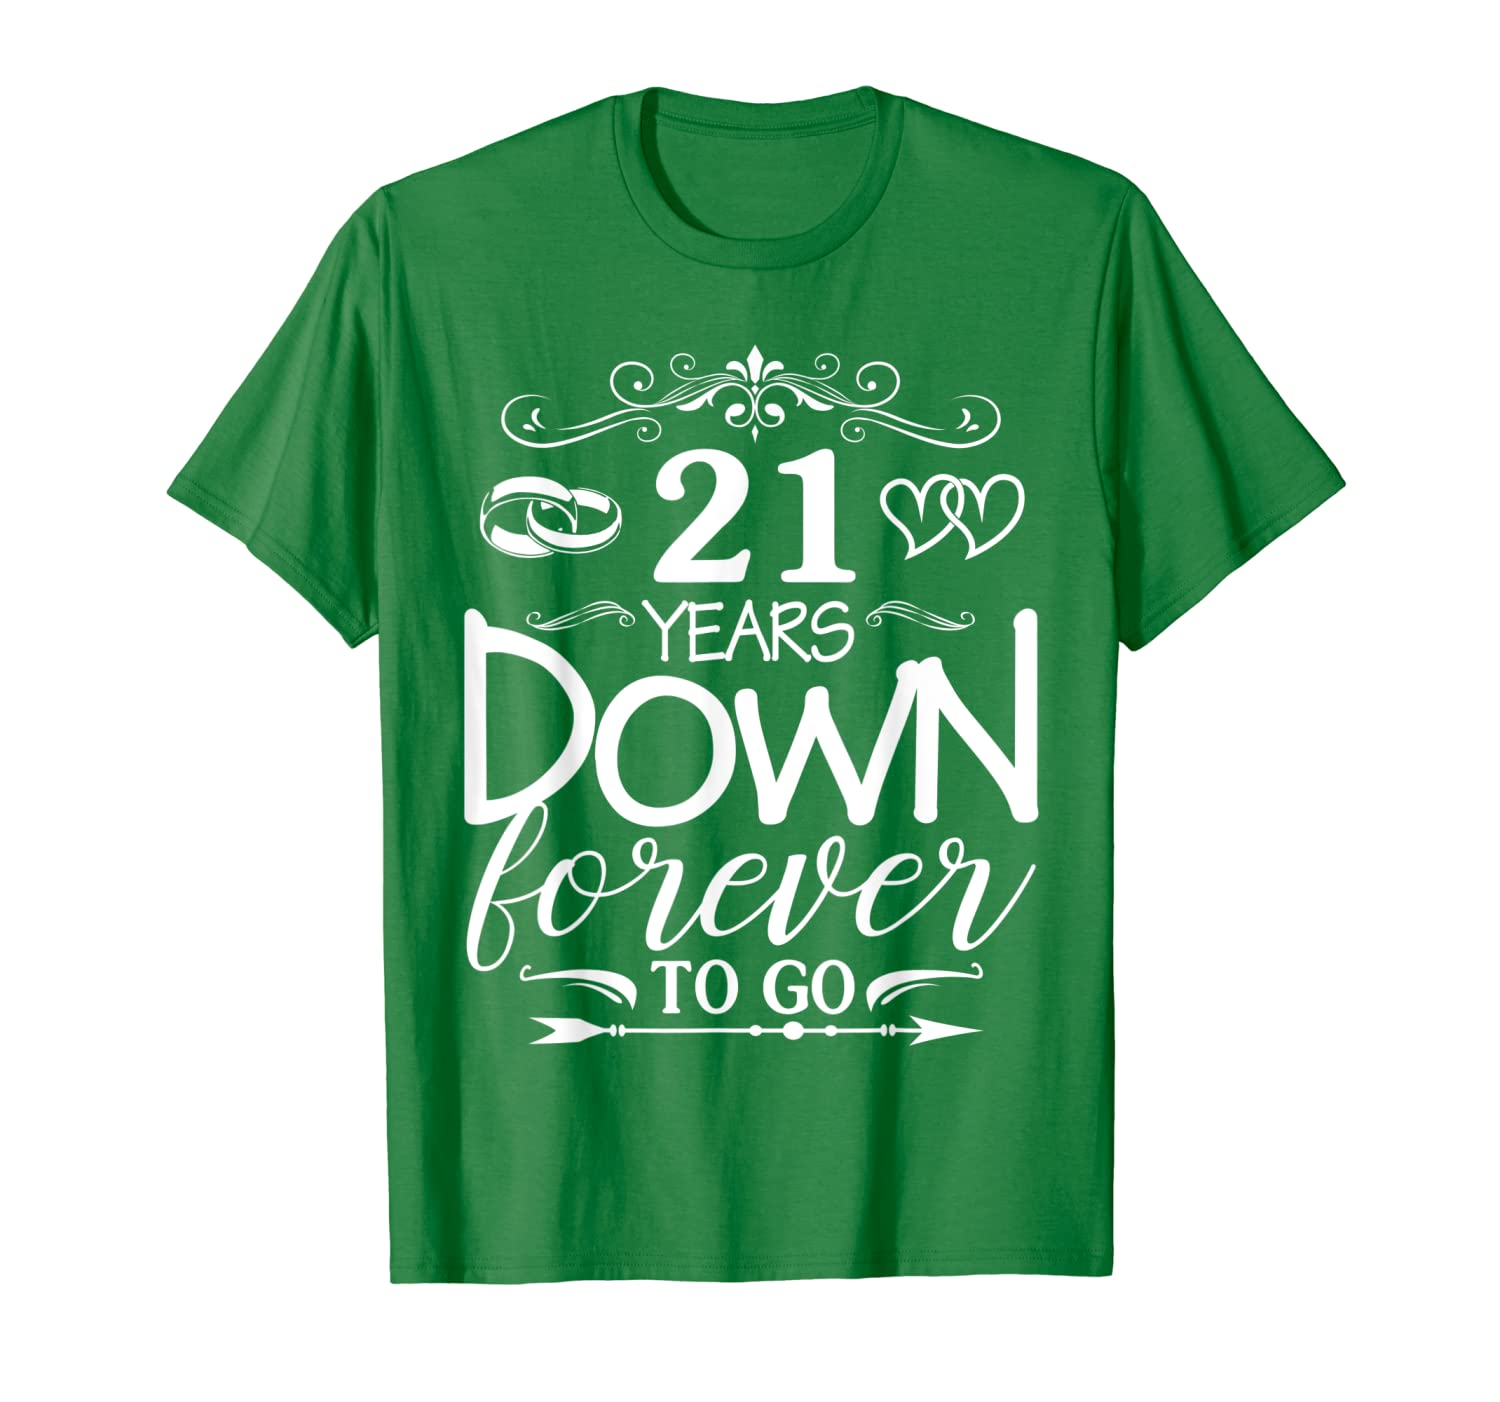 21st Wedding Anniversary.21 Years Down Forever To Go 21st Wedding Anniversary Shirt